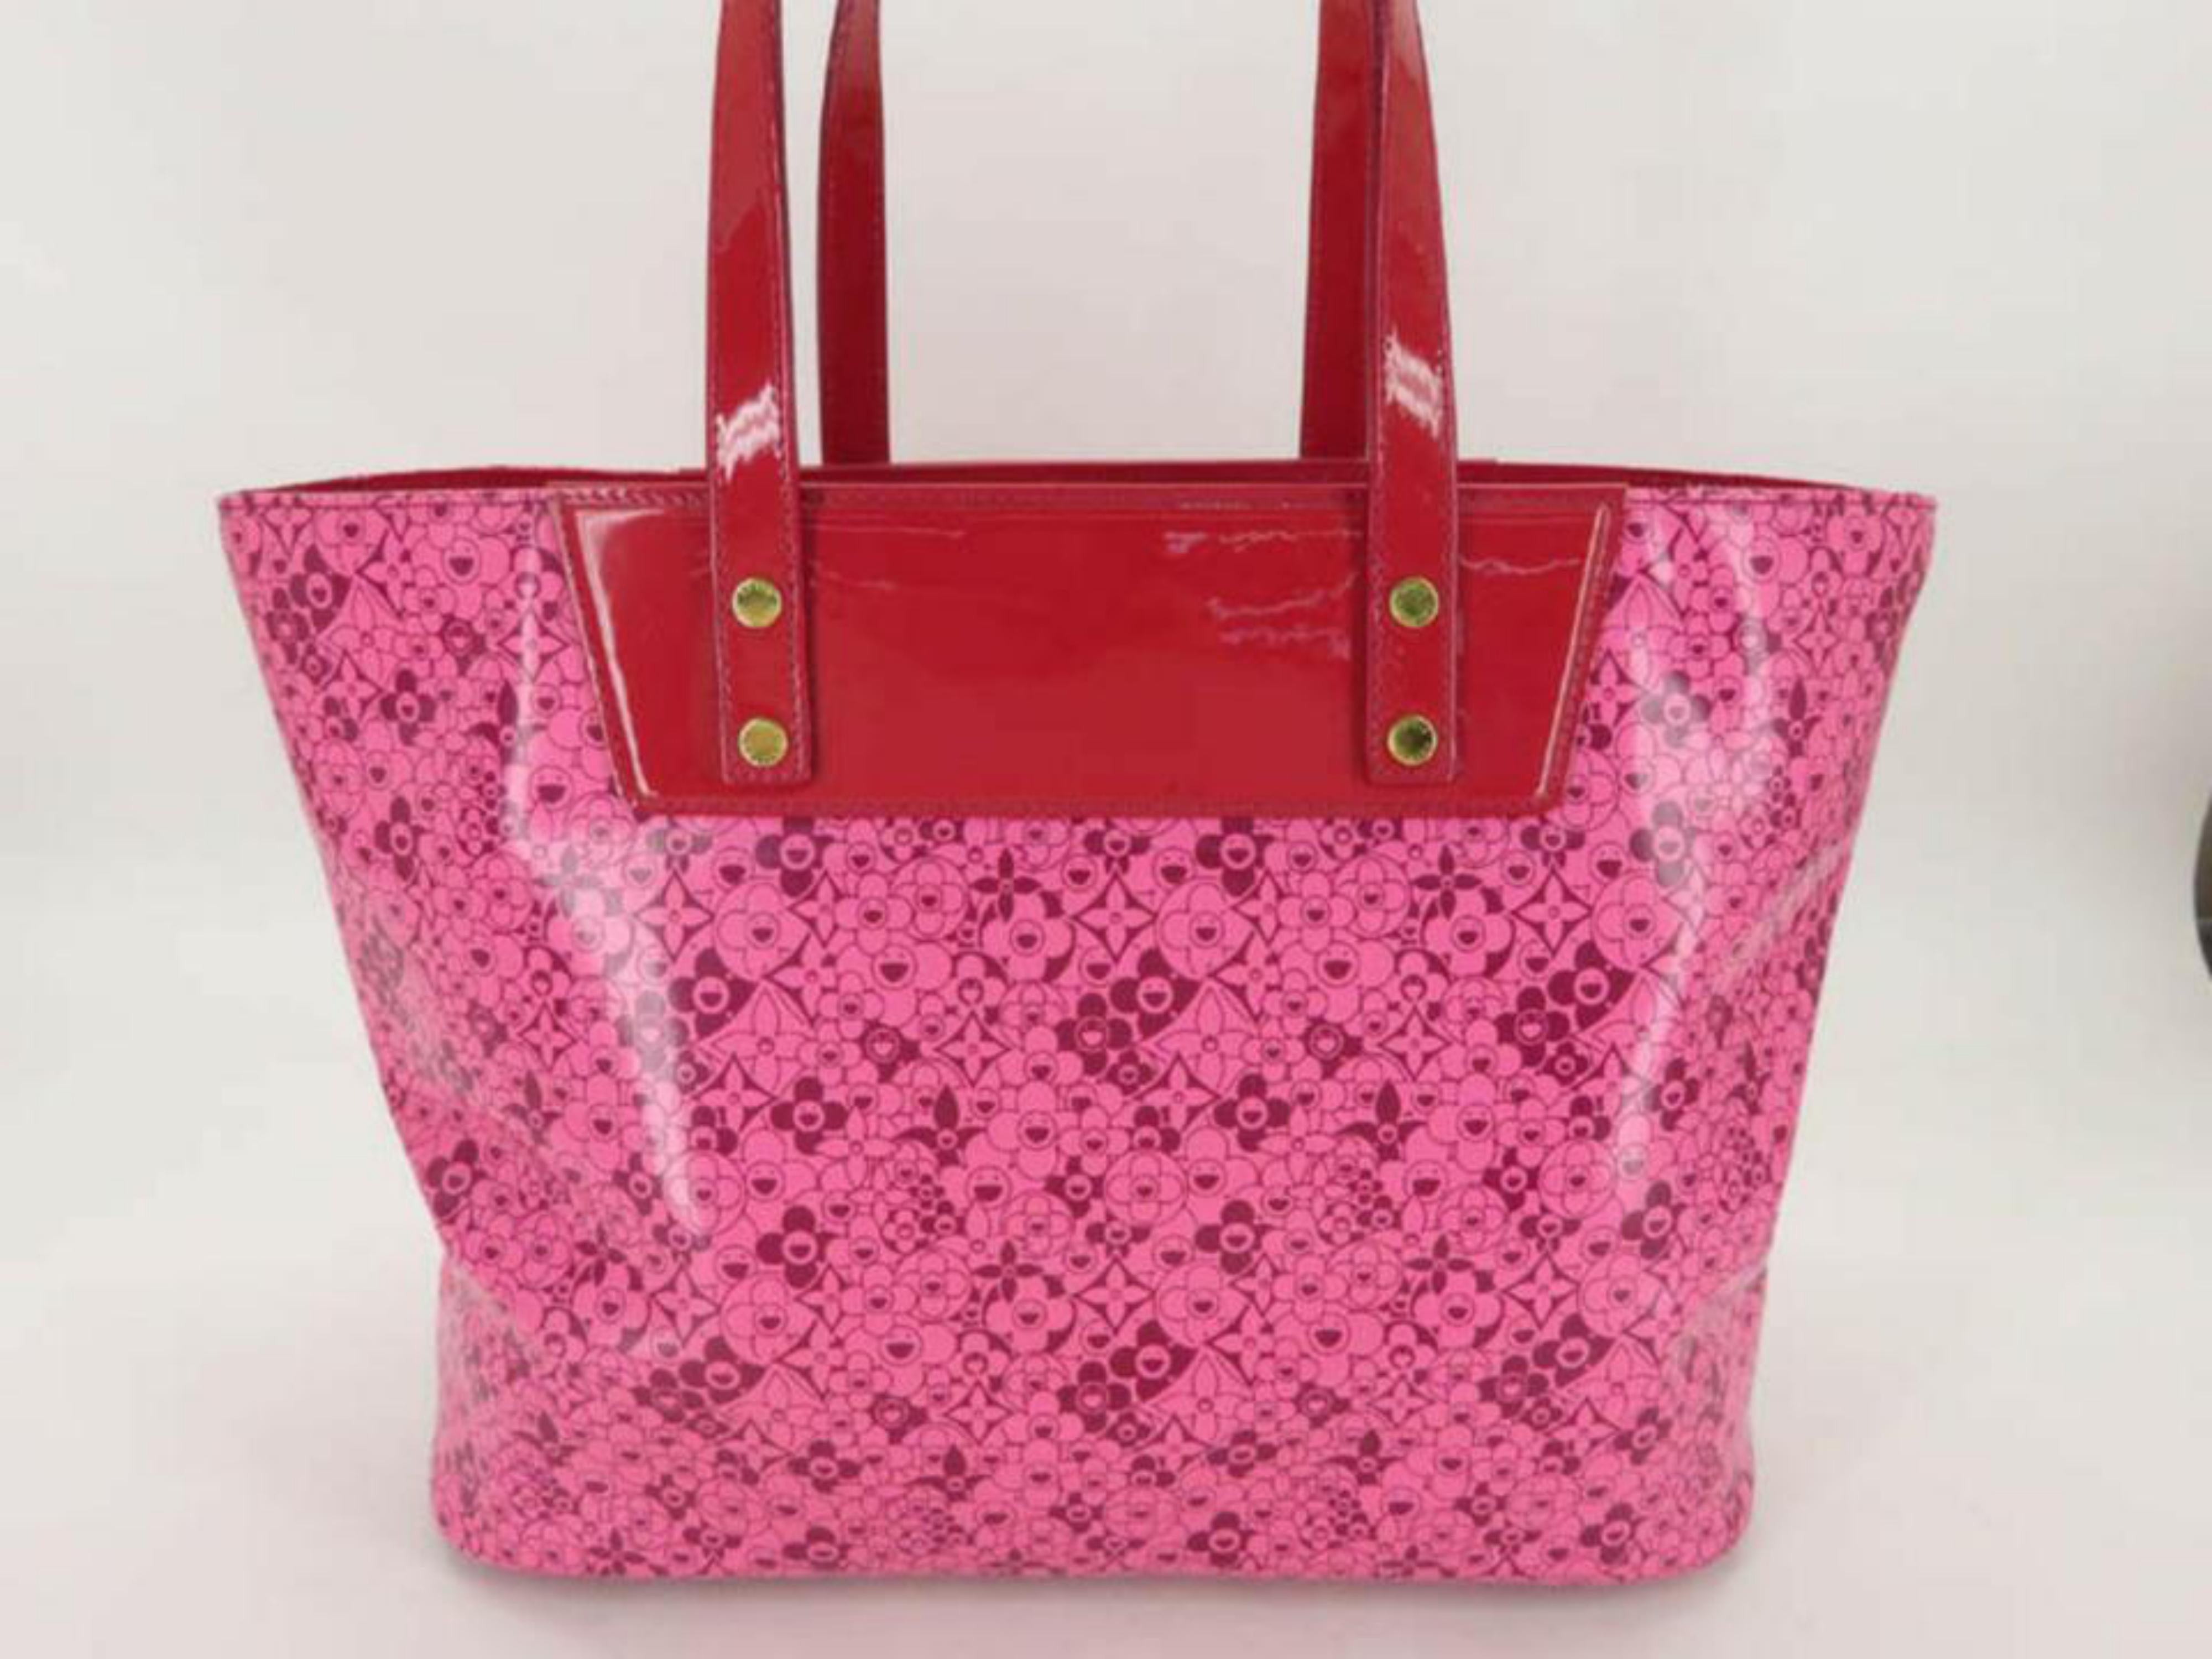 df3ebe9729231 Louis Vuitton Murakami Cosmic Blossom Pm 870012 Pink Leather Tote For Sale  at 1stdibs